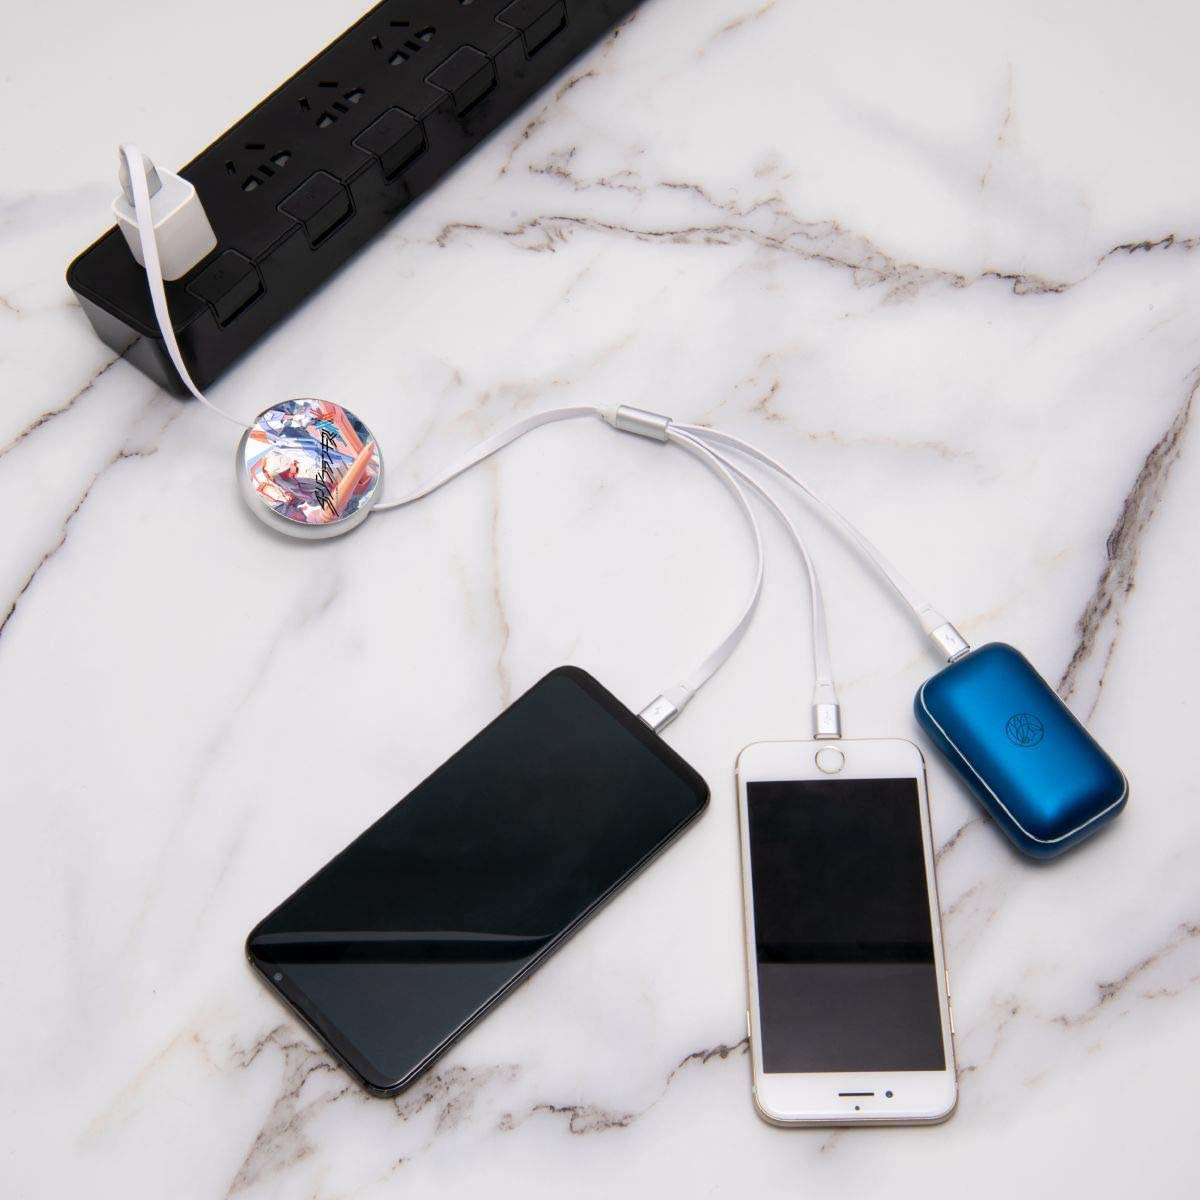 Suitable for Apple N//C Darling in The Franxx3-In-1 Telescopic Multi-Function Charging Cable Tpye-C Universal Interface Android Etc.